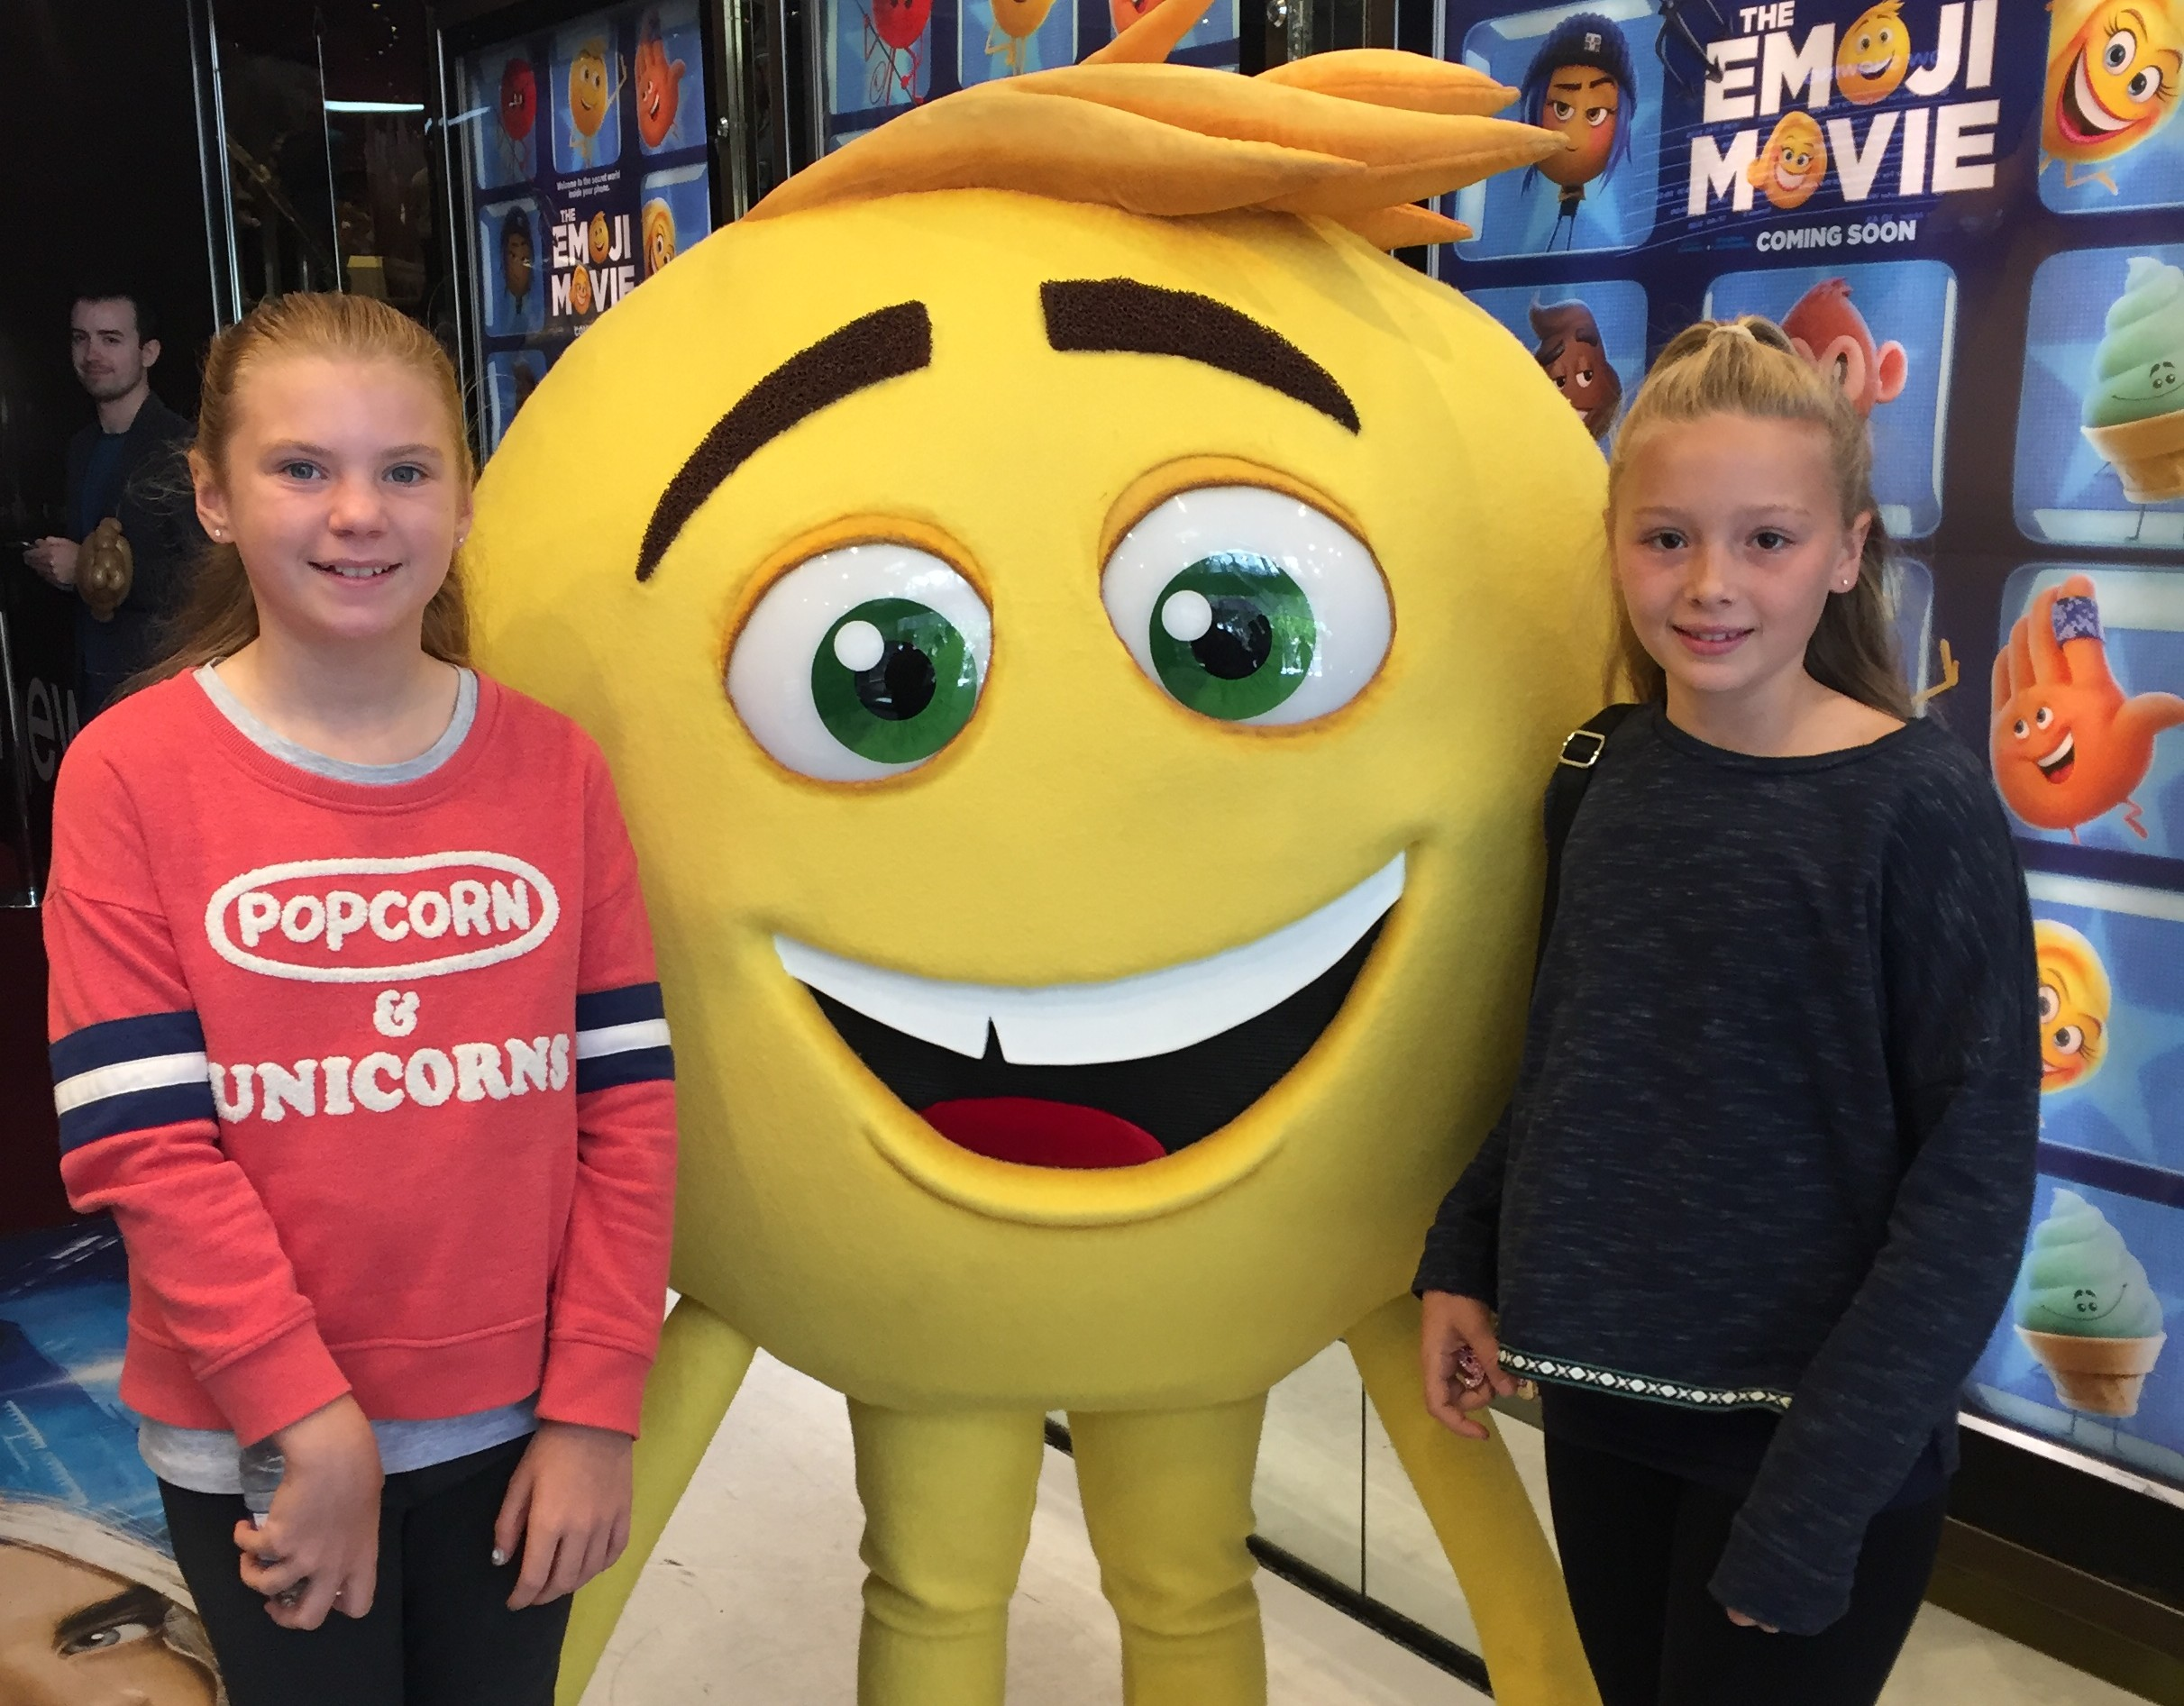 Emoji movie party. (2)